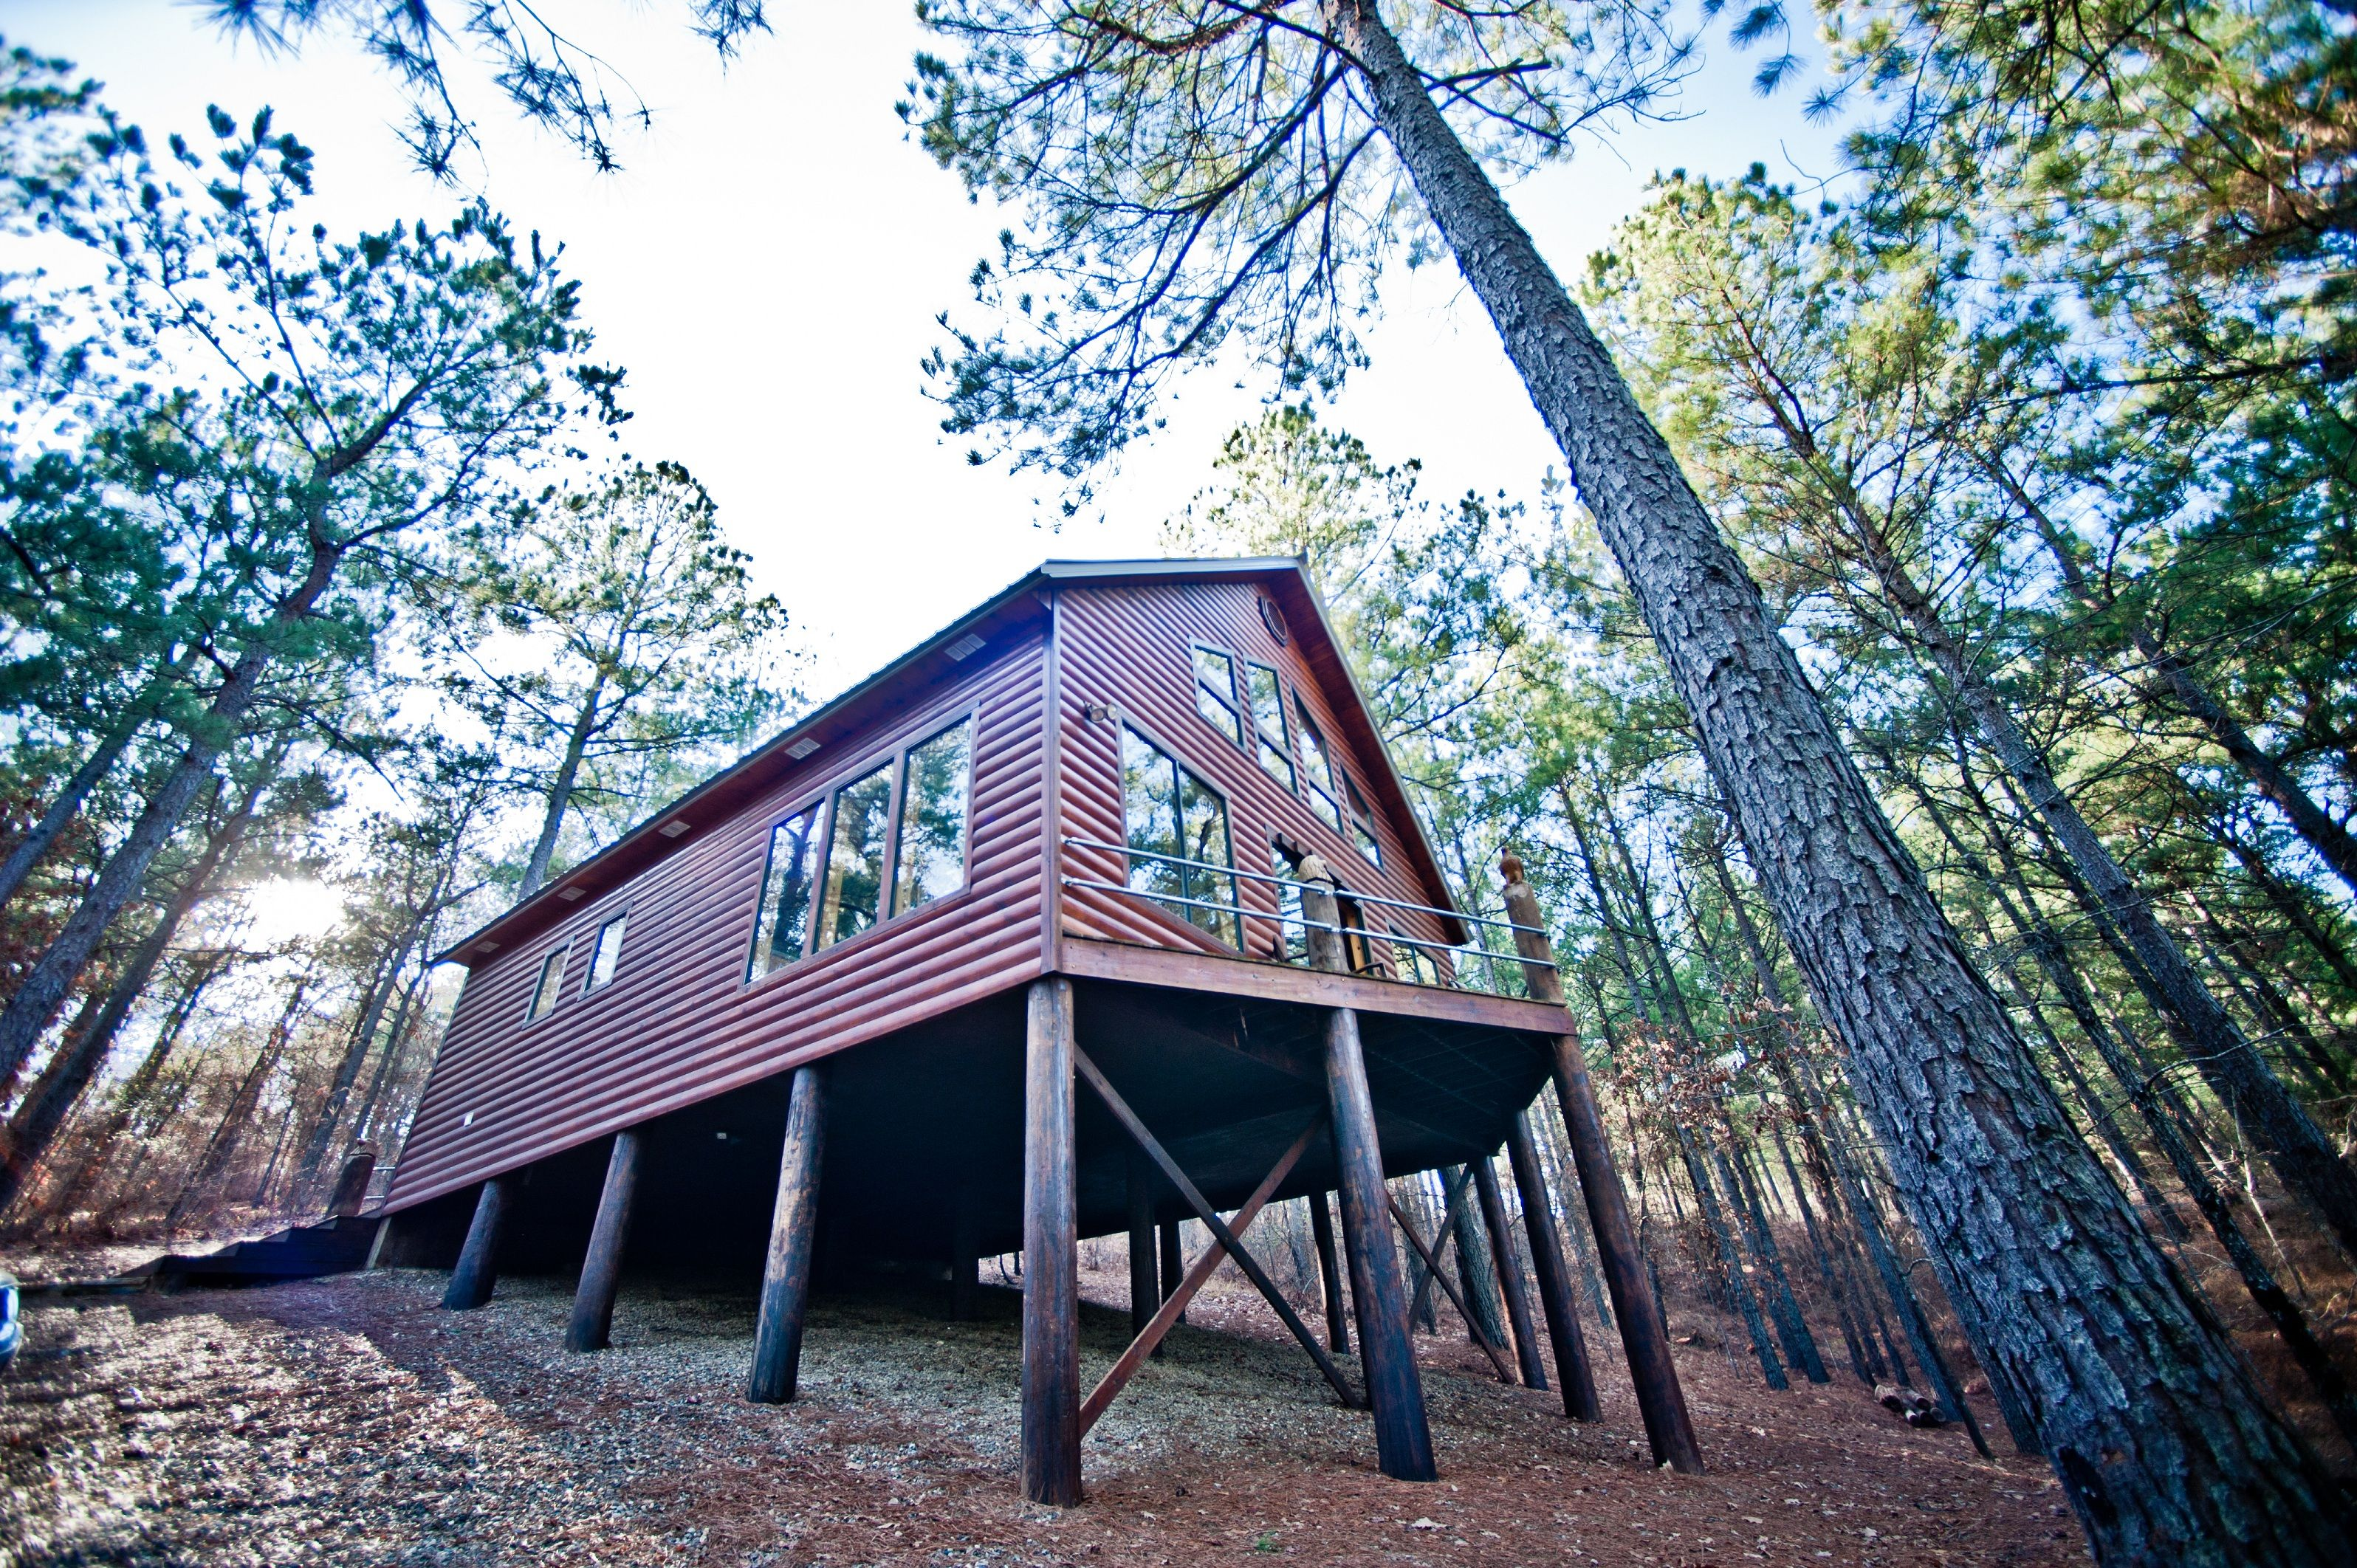 cabins beavers dirt red lodge front reddirtlodge state park bend adventures